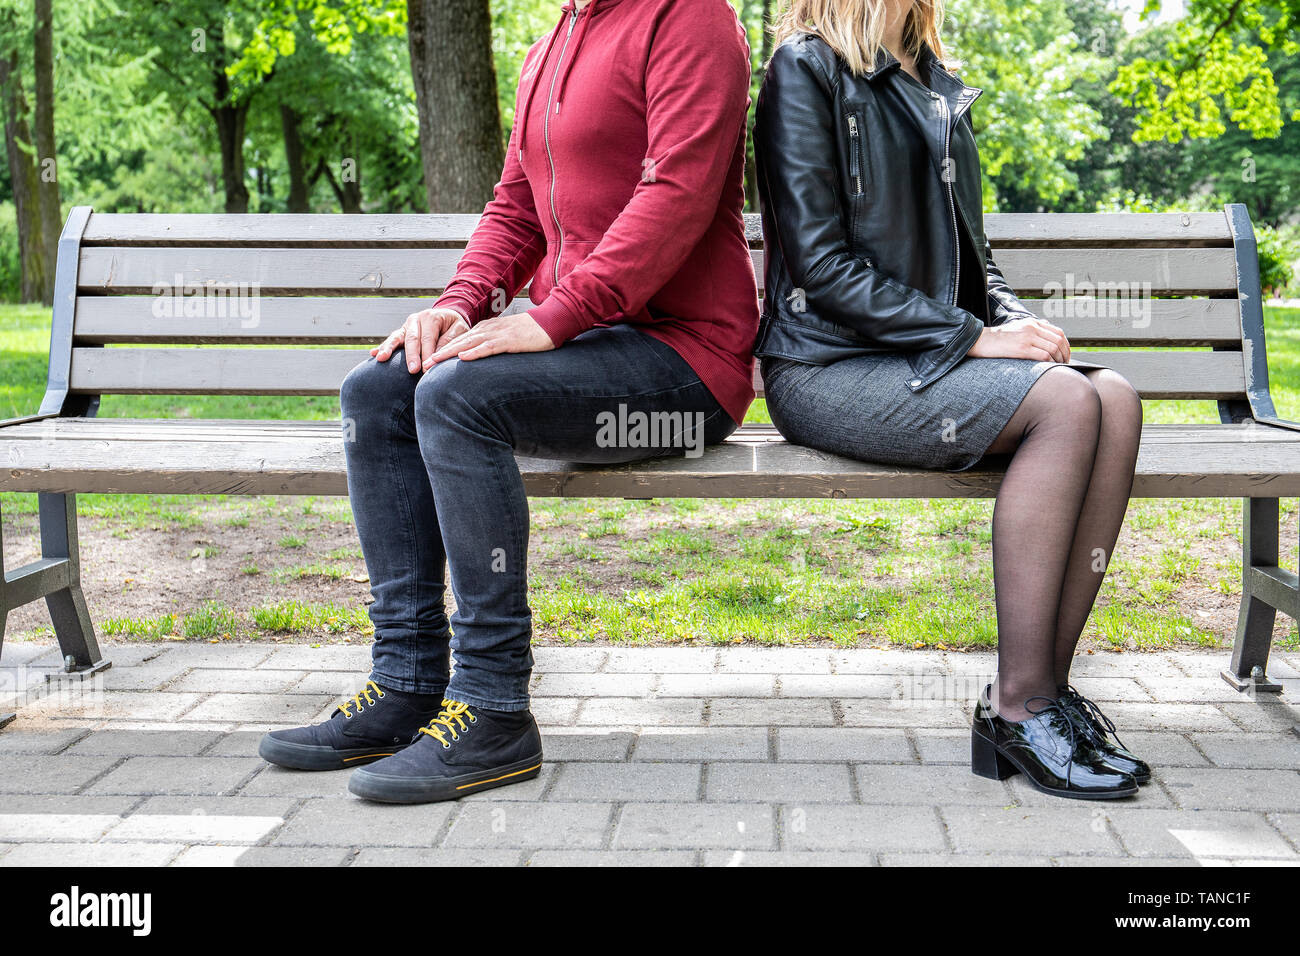 Relationship and body language concept. Couple - man and women sitting on the bench - Stock Image